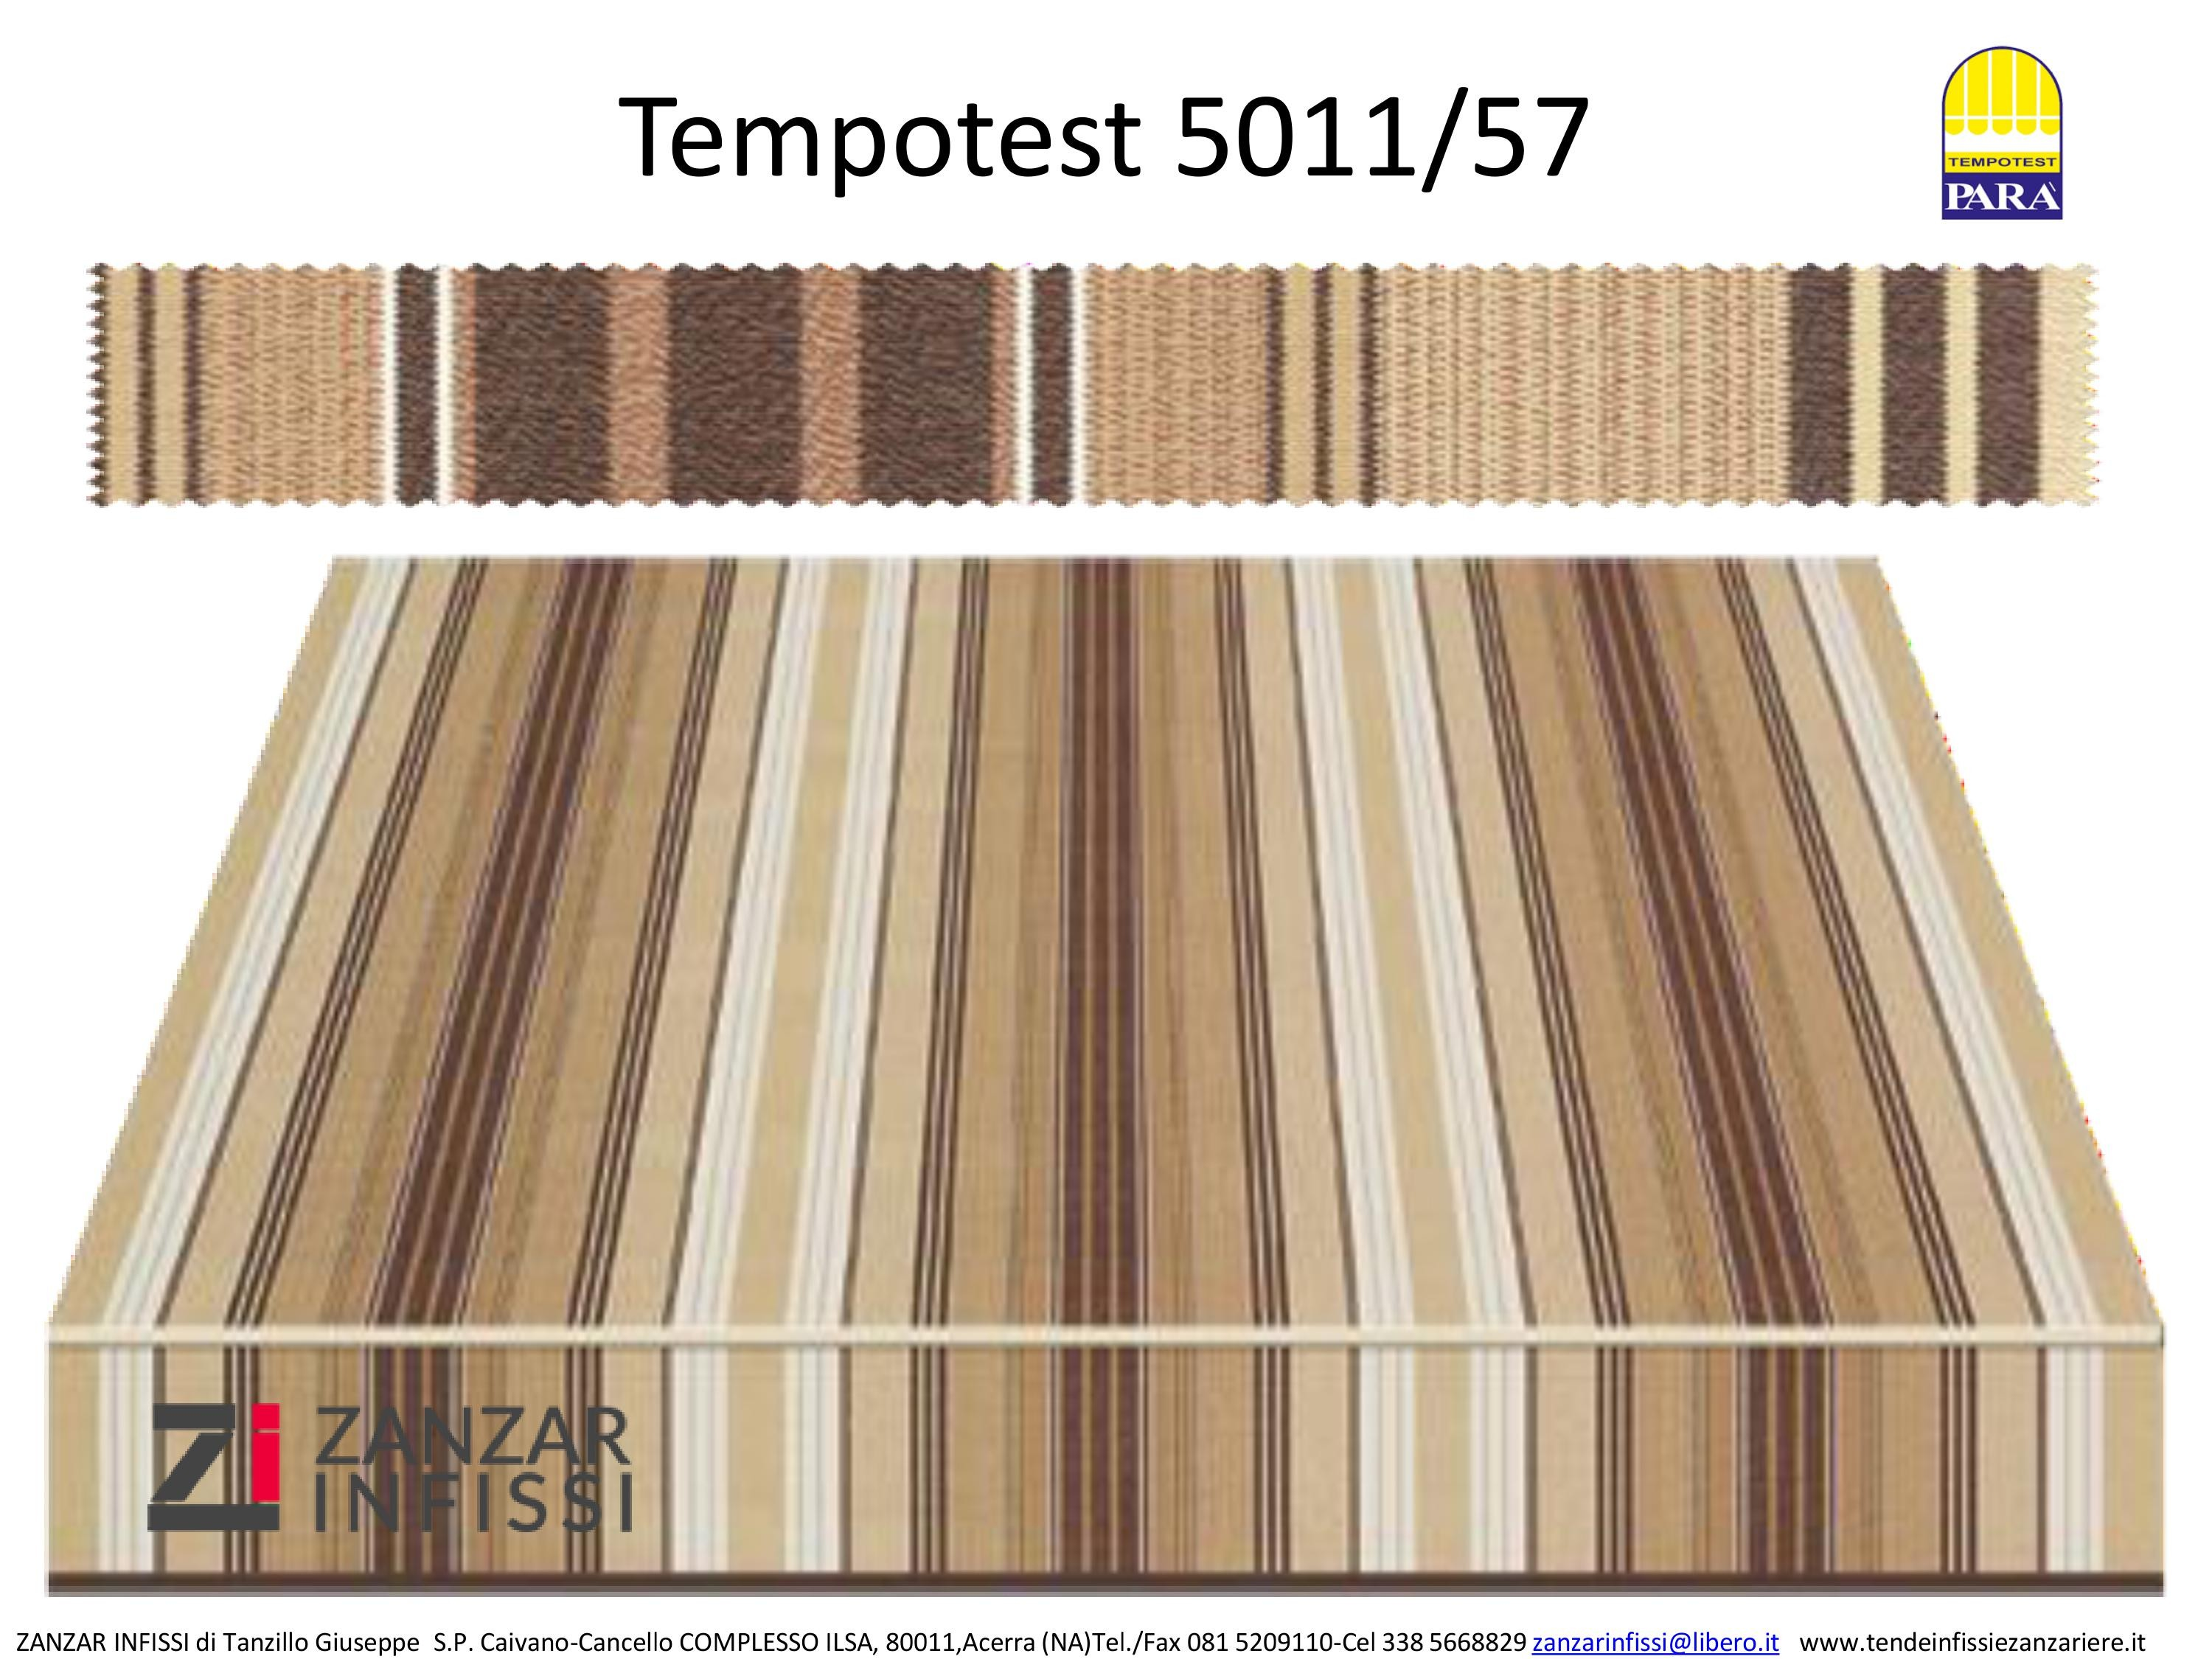 Tempotest 5011/57